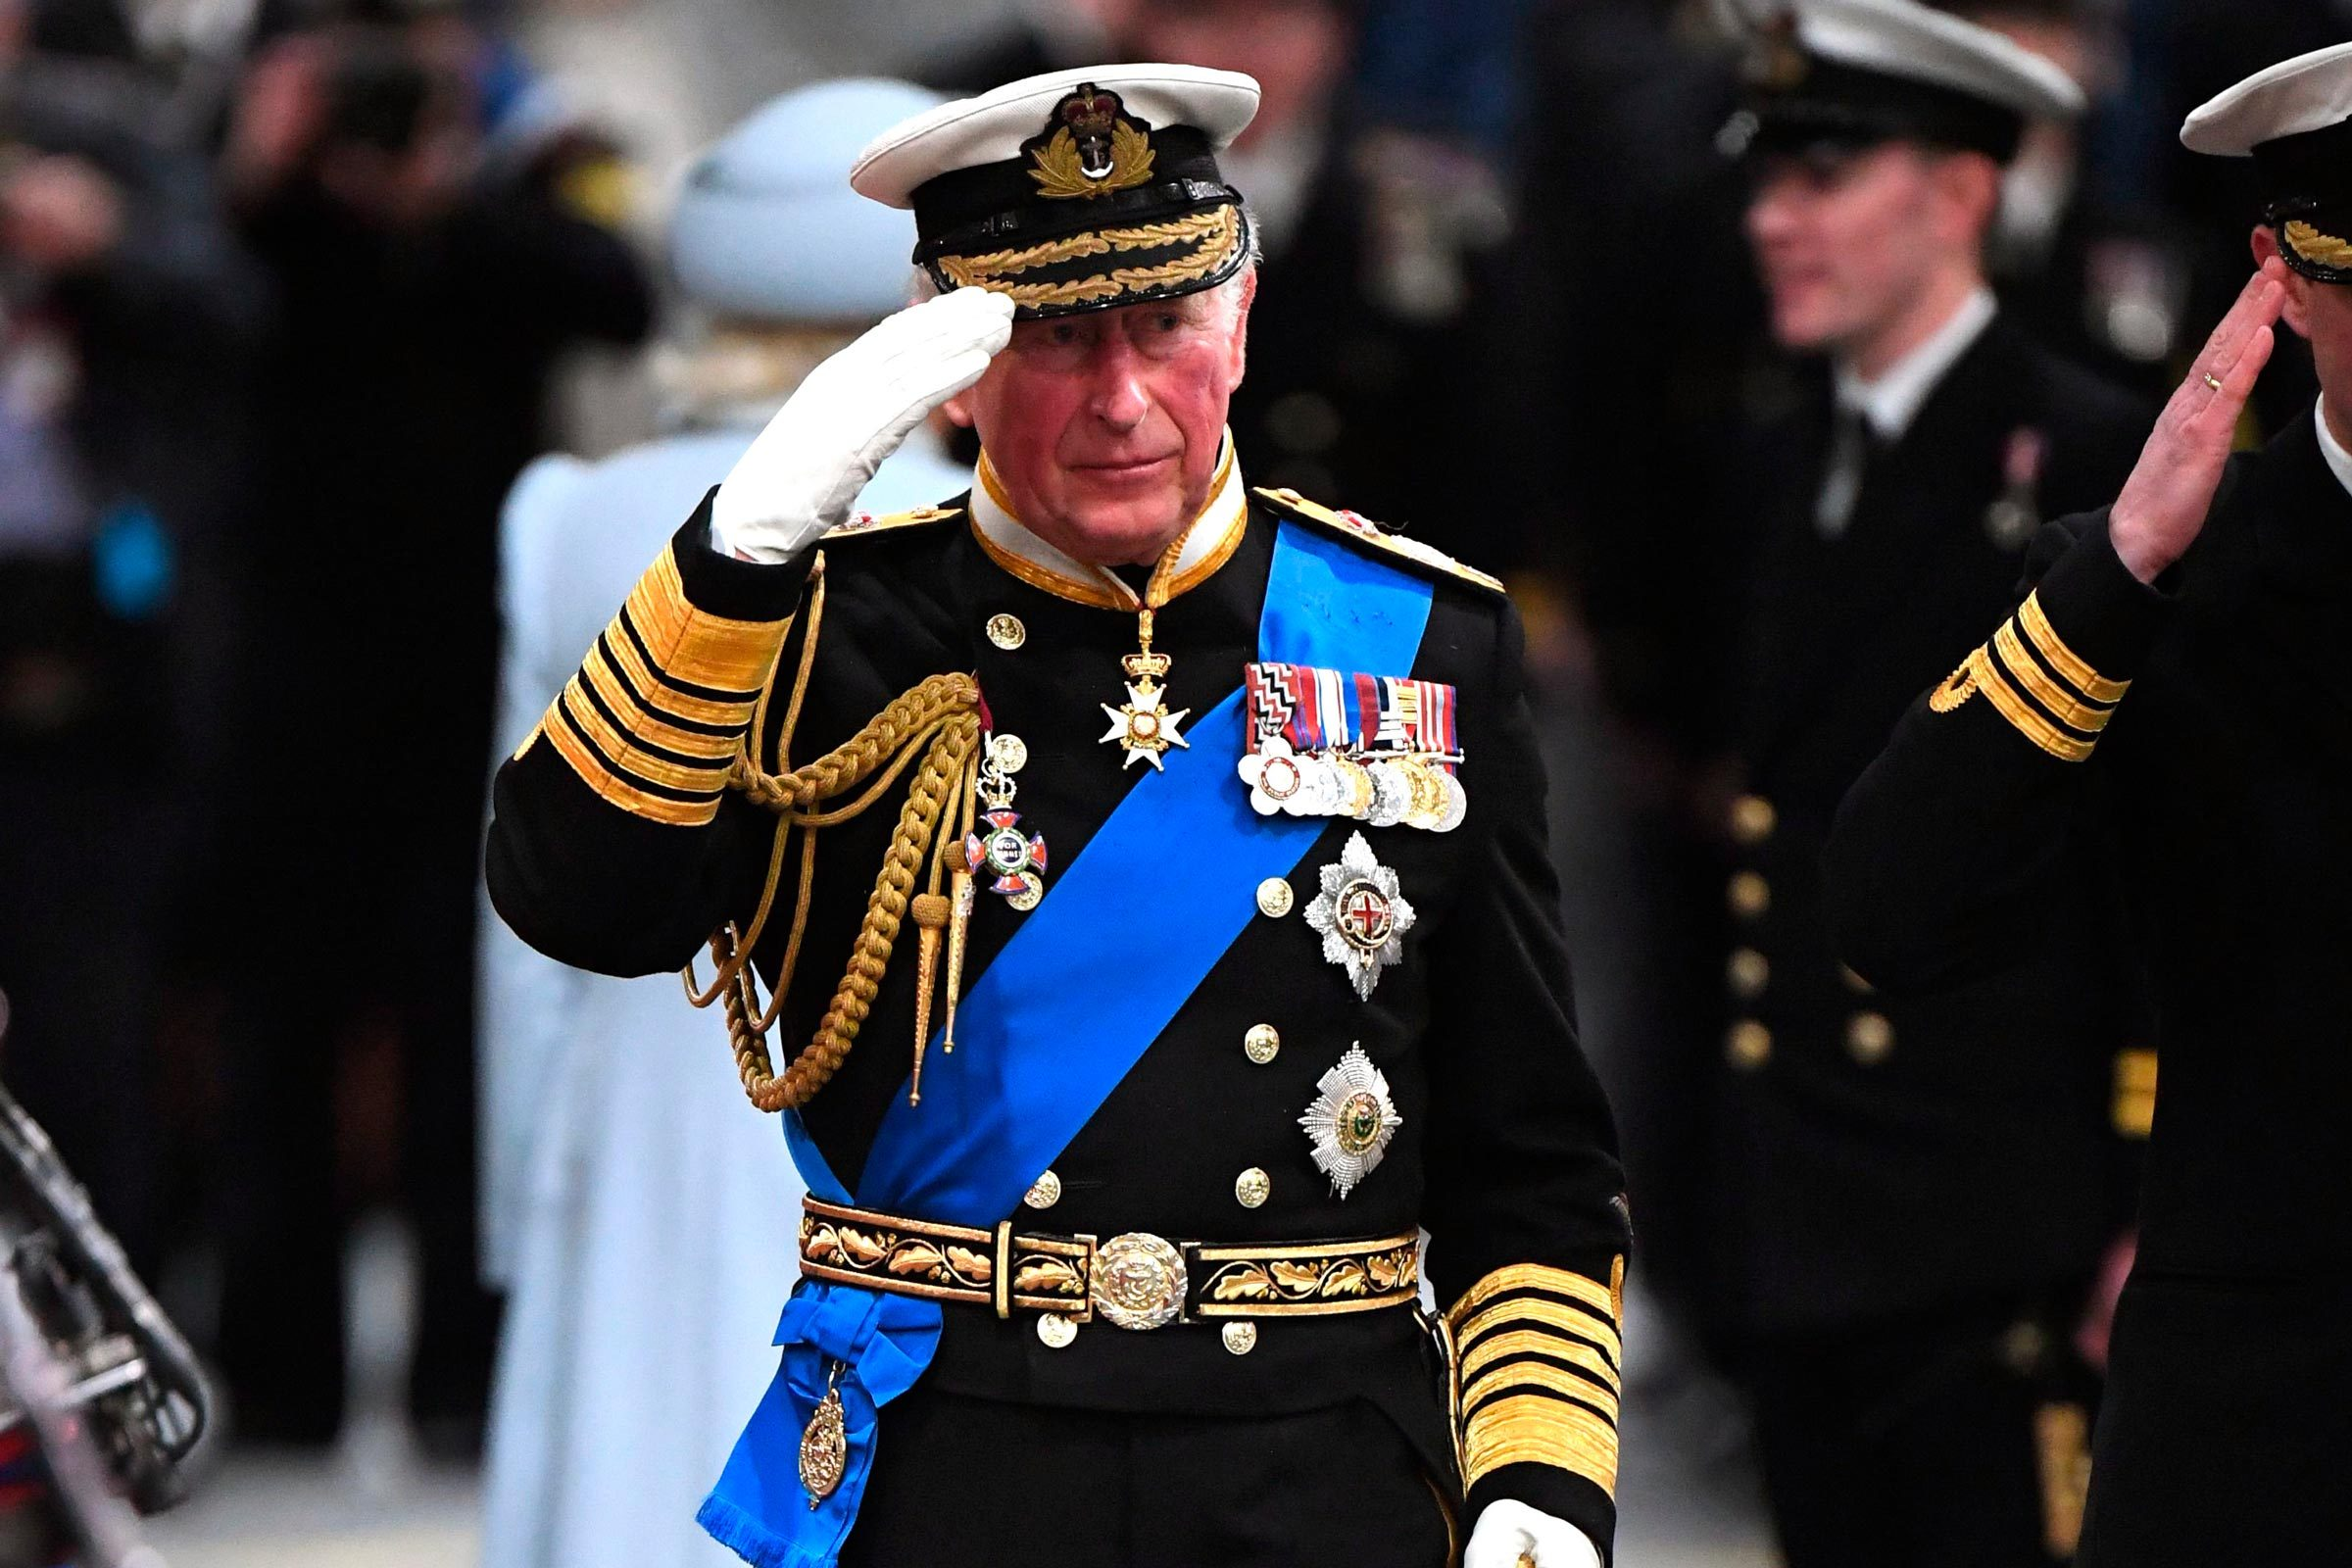 Commissioning of HMS The Prince of Wales, Portsmouth, UK - 10 Dec 2019 Prince Charles